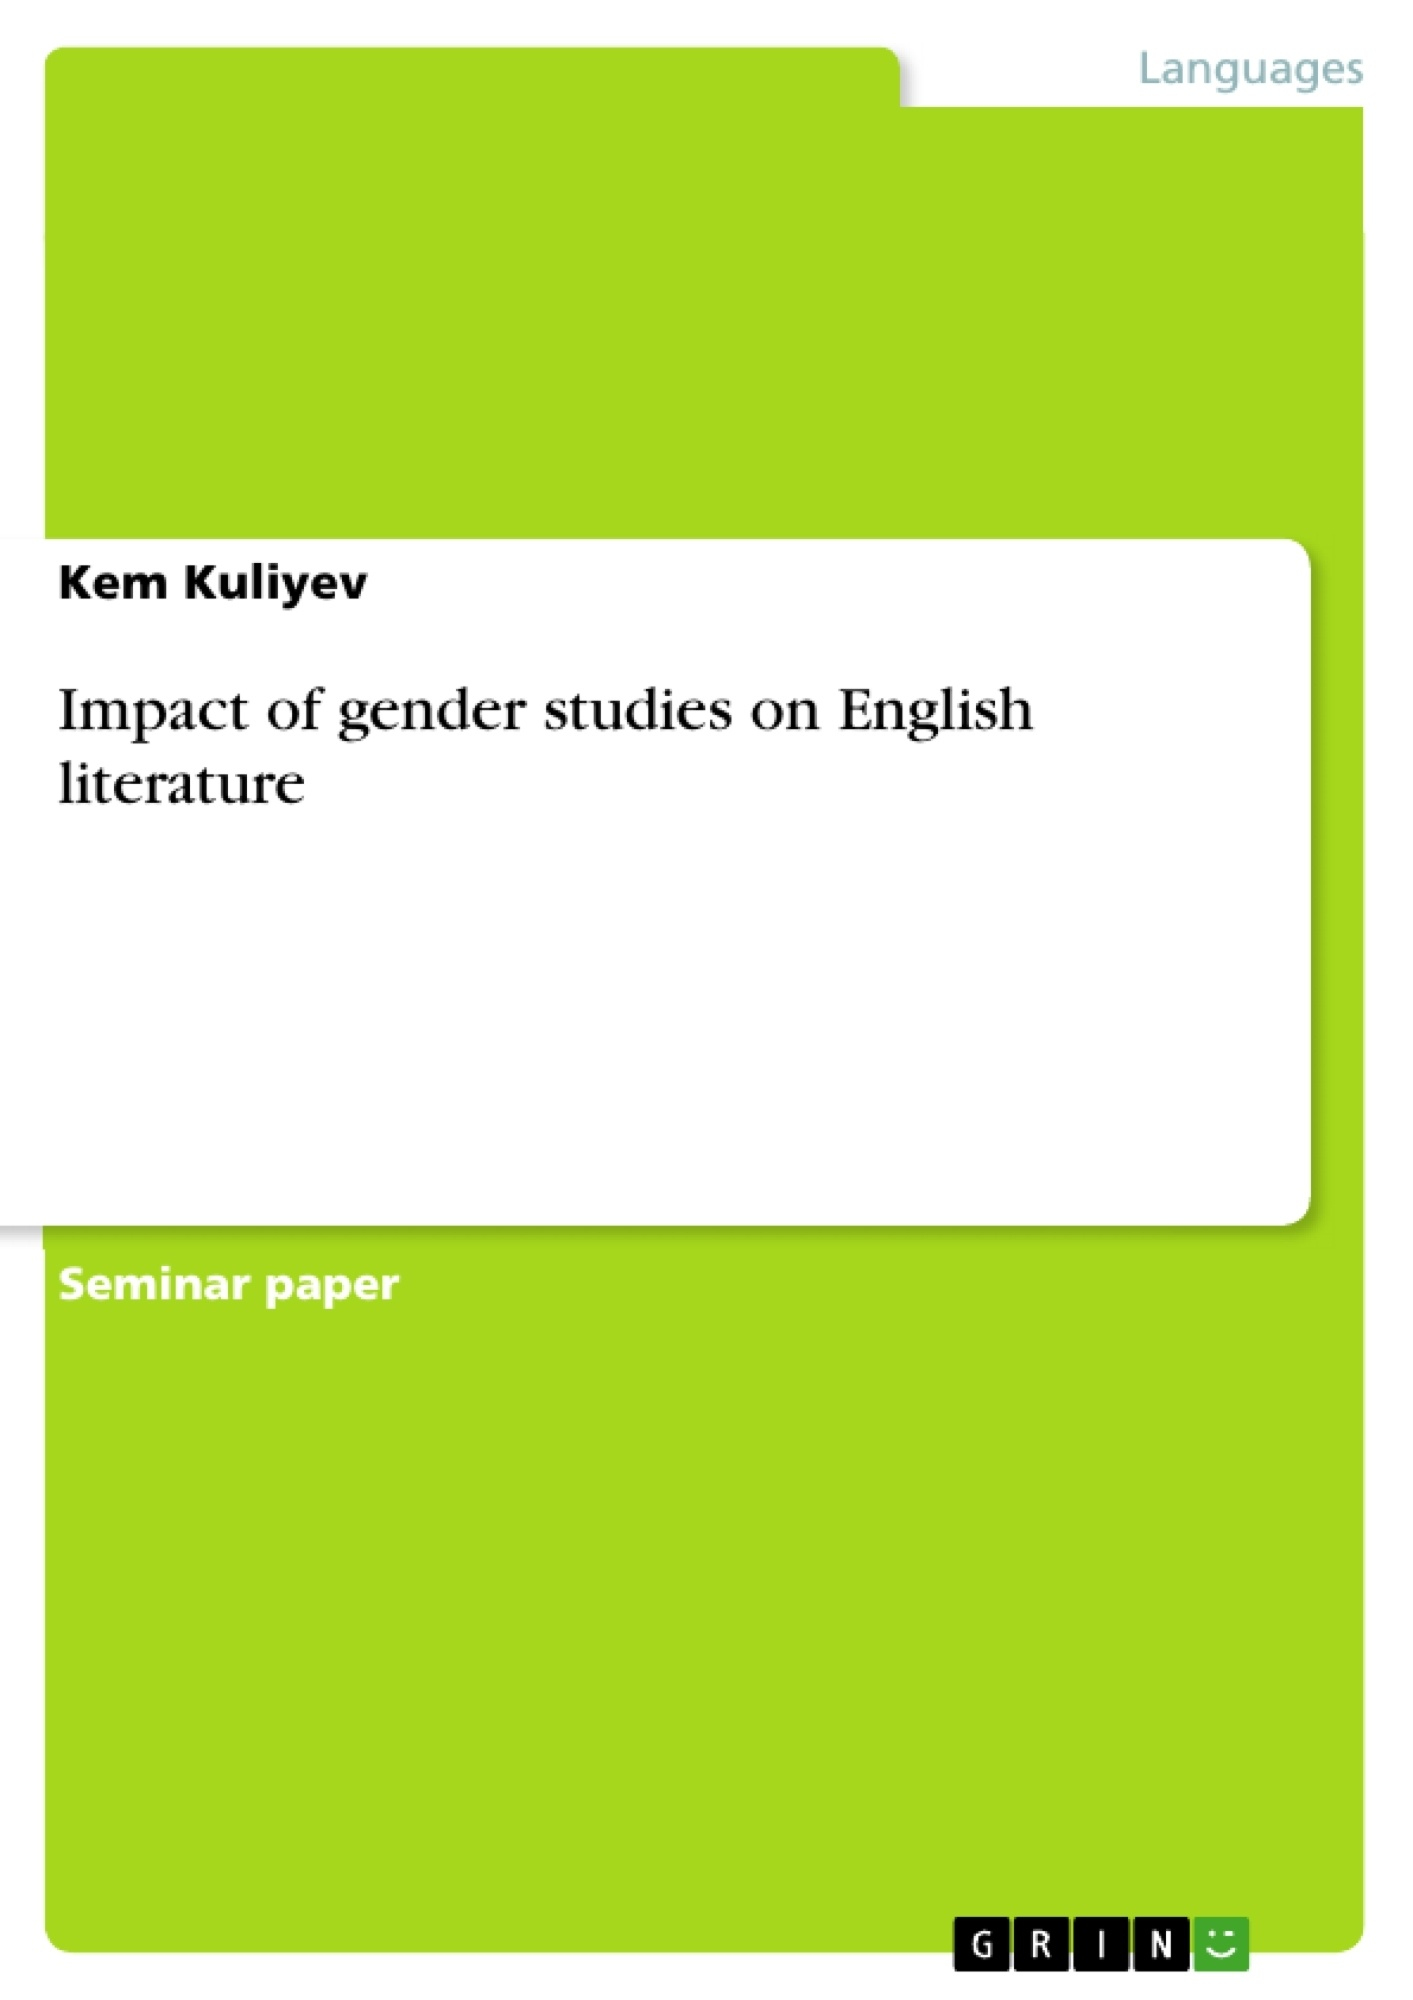 Title: Impact of gender studies on English literature